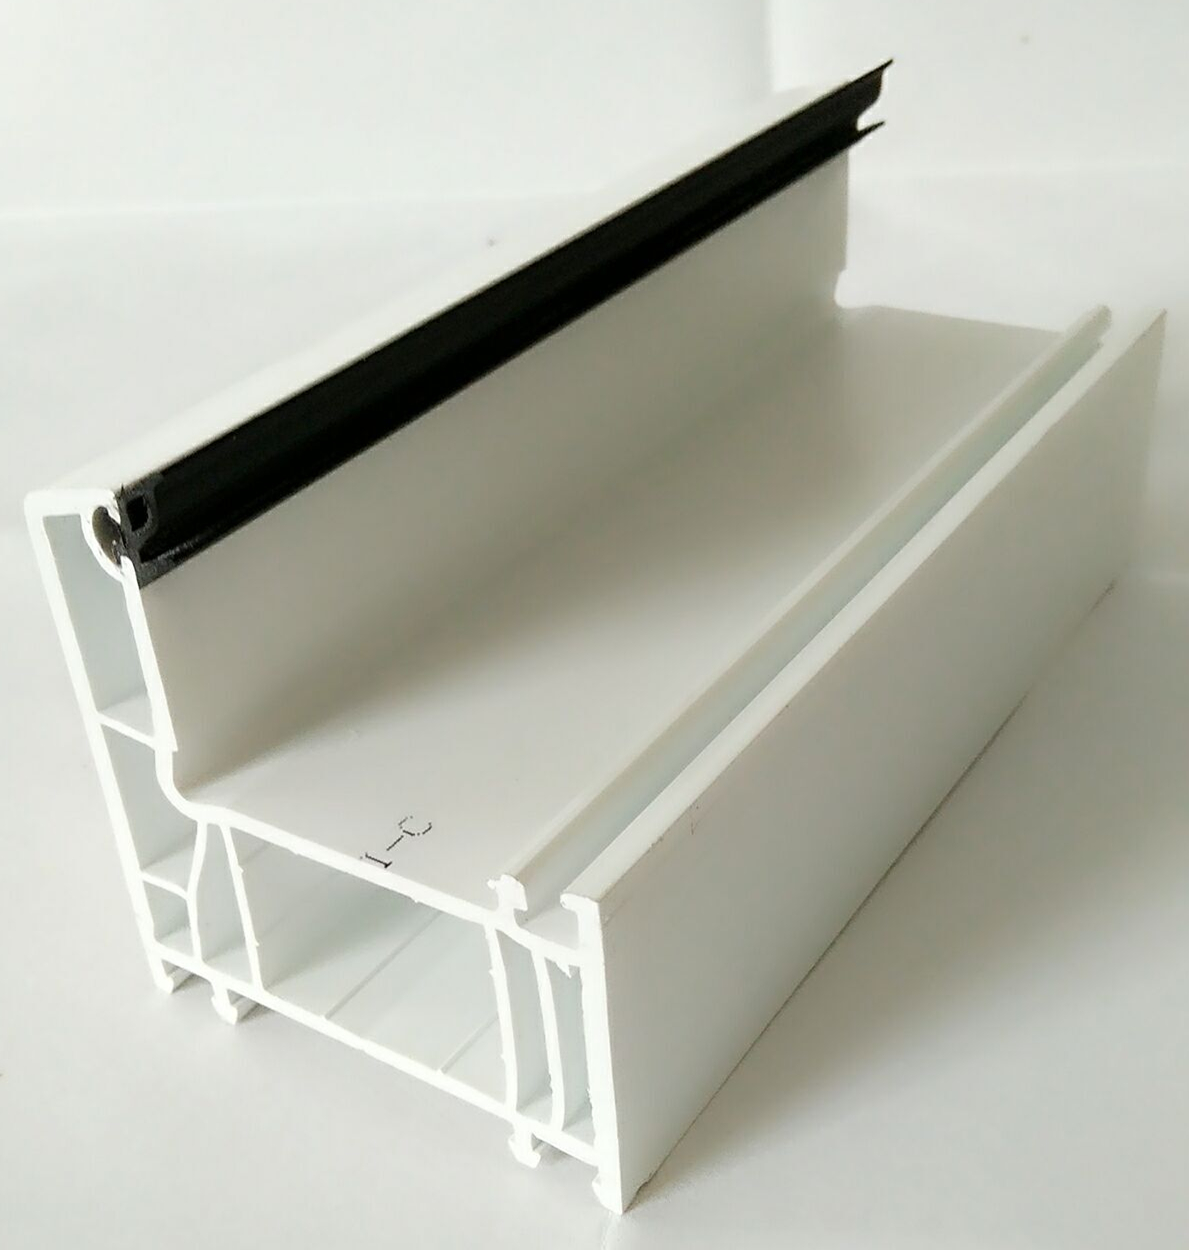 65mm series vinyl extrusion profiles for Plastic windows and doors